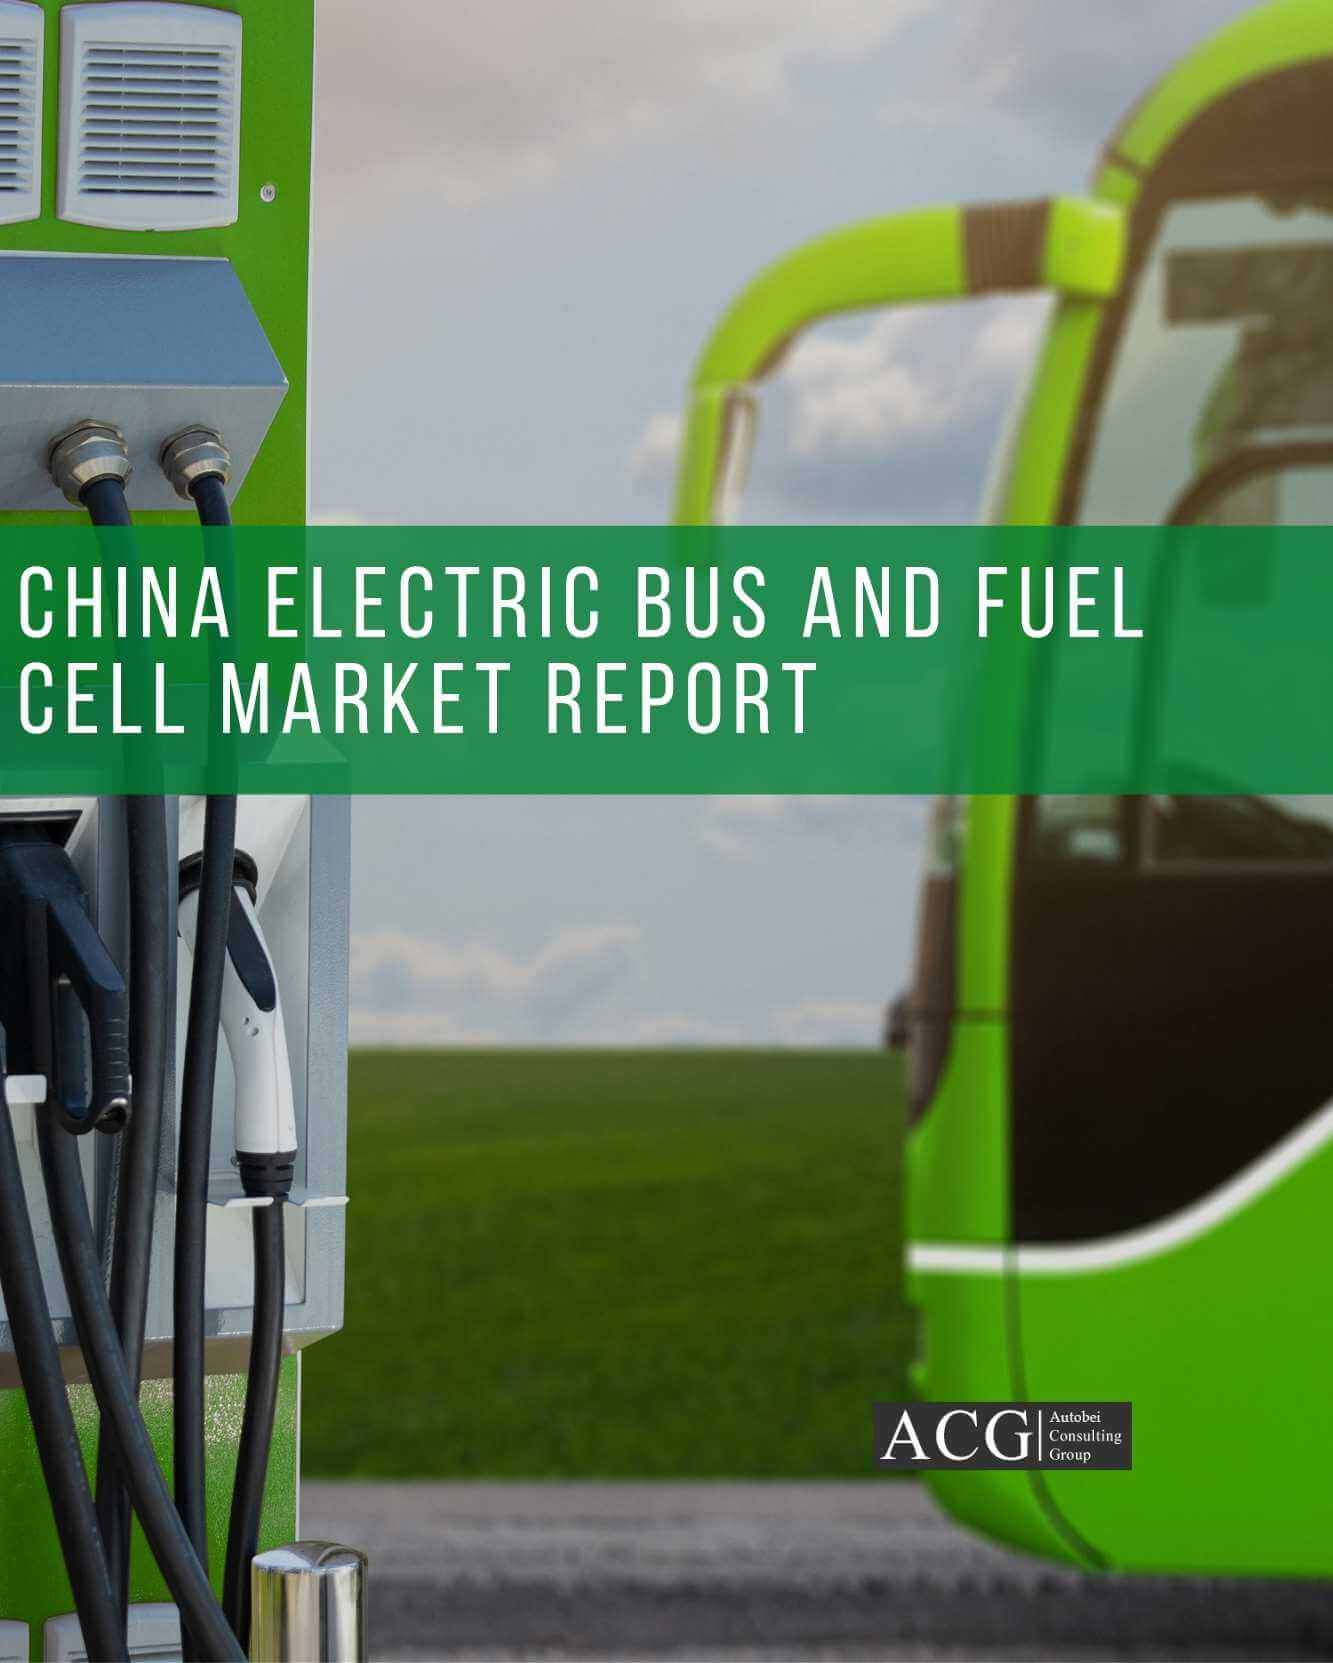 China Electric Bus and Fuel Cell Market Report